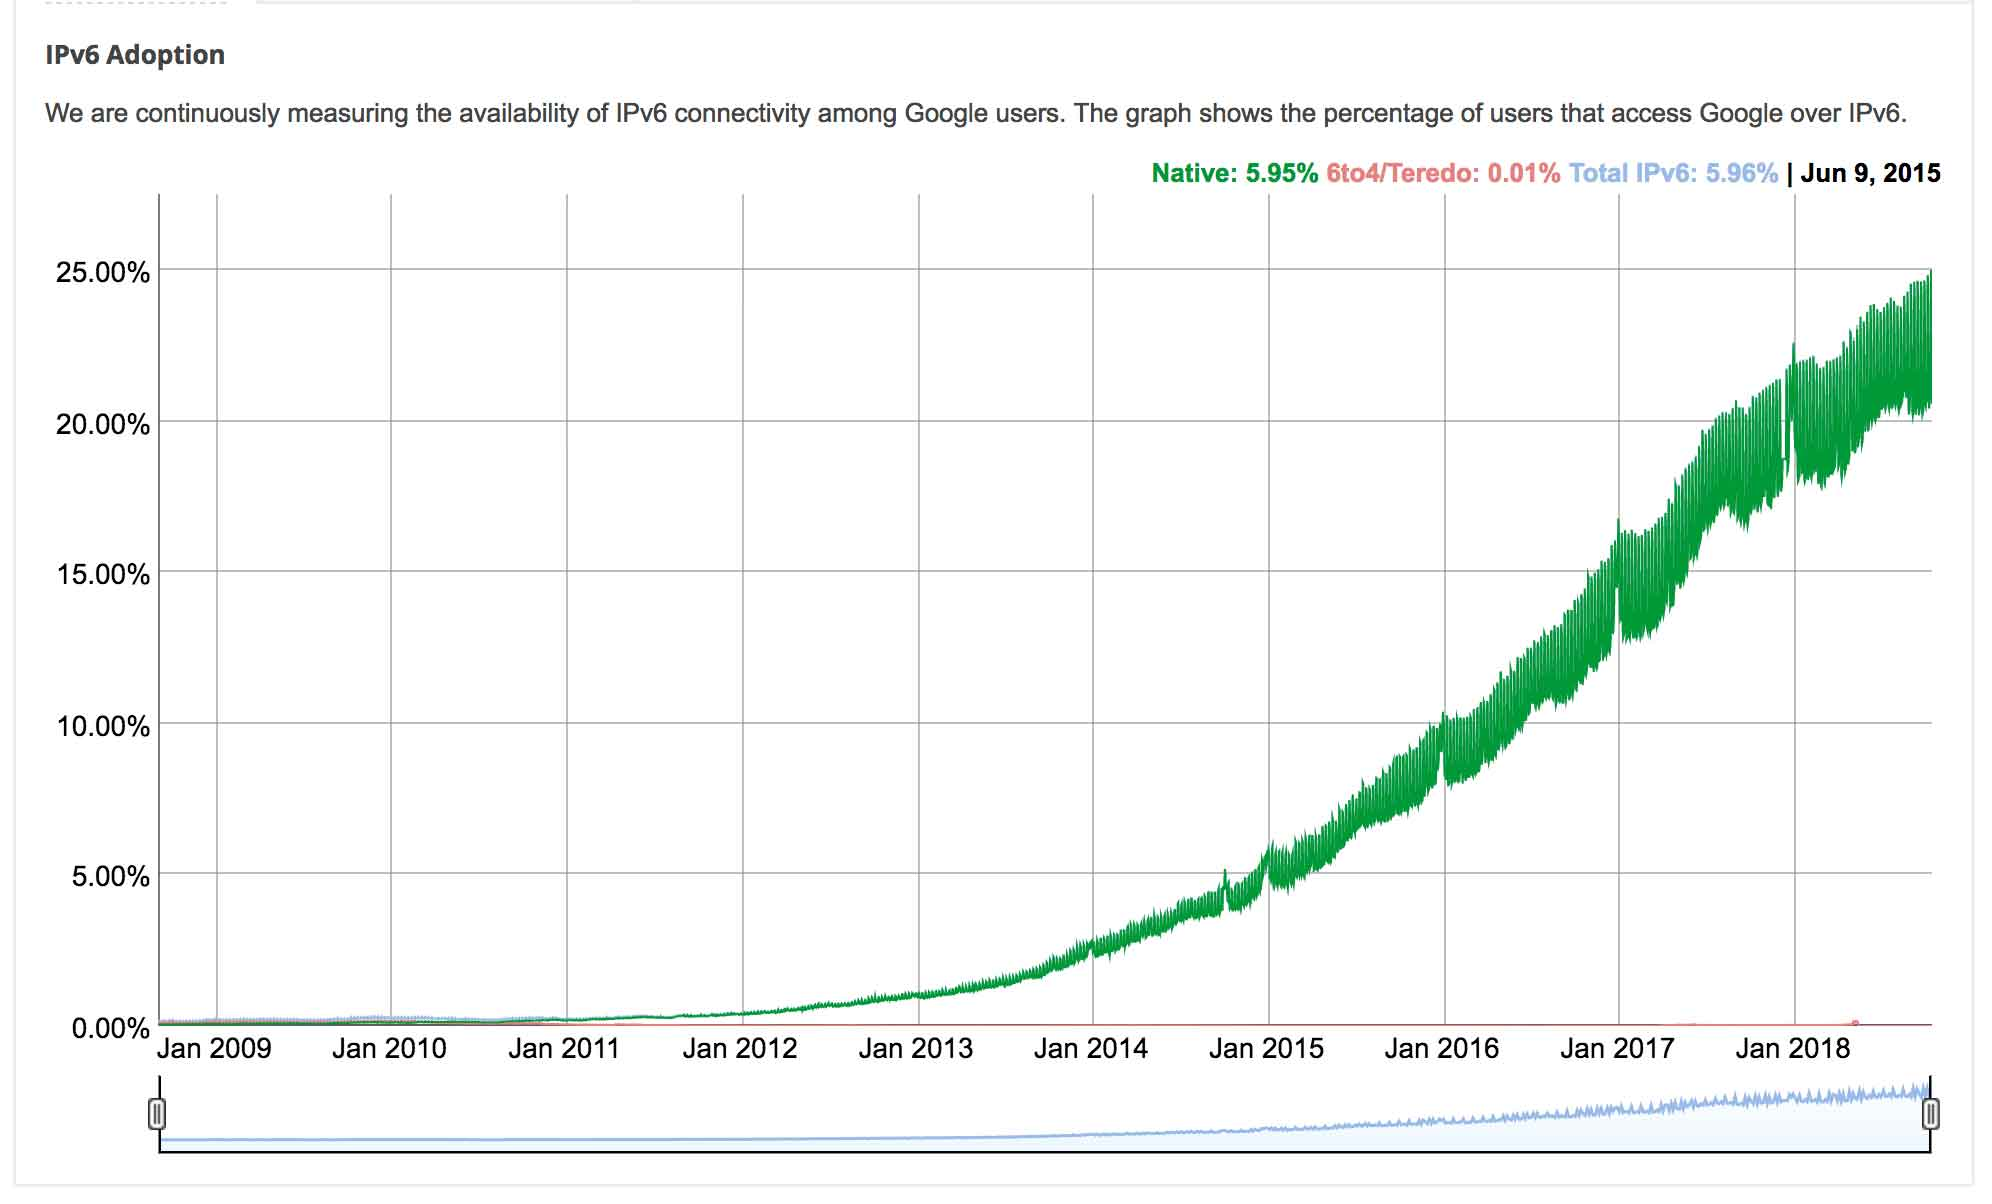 ipv6 adoption @bubblin